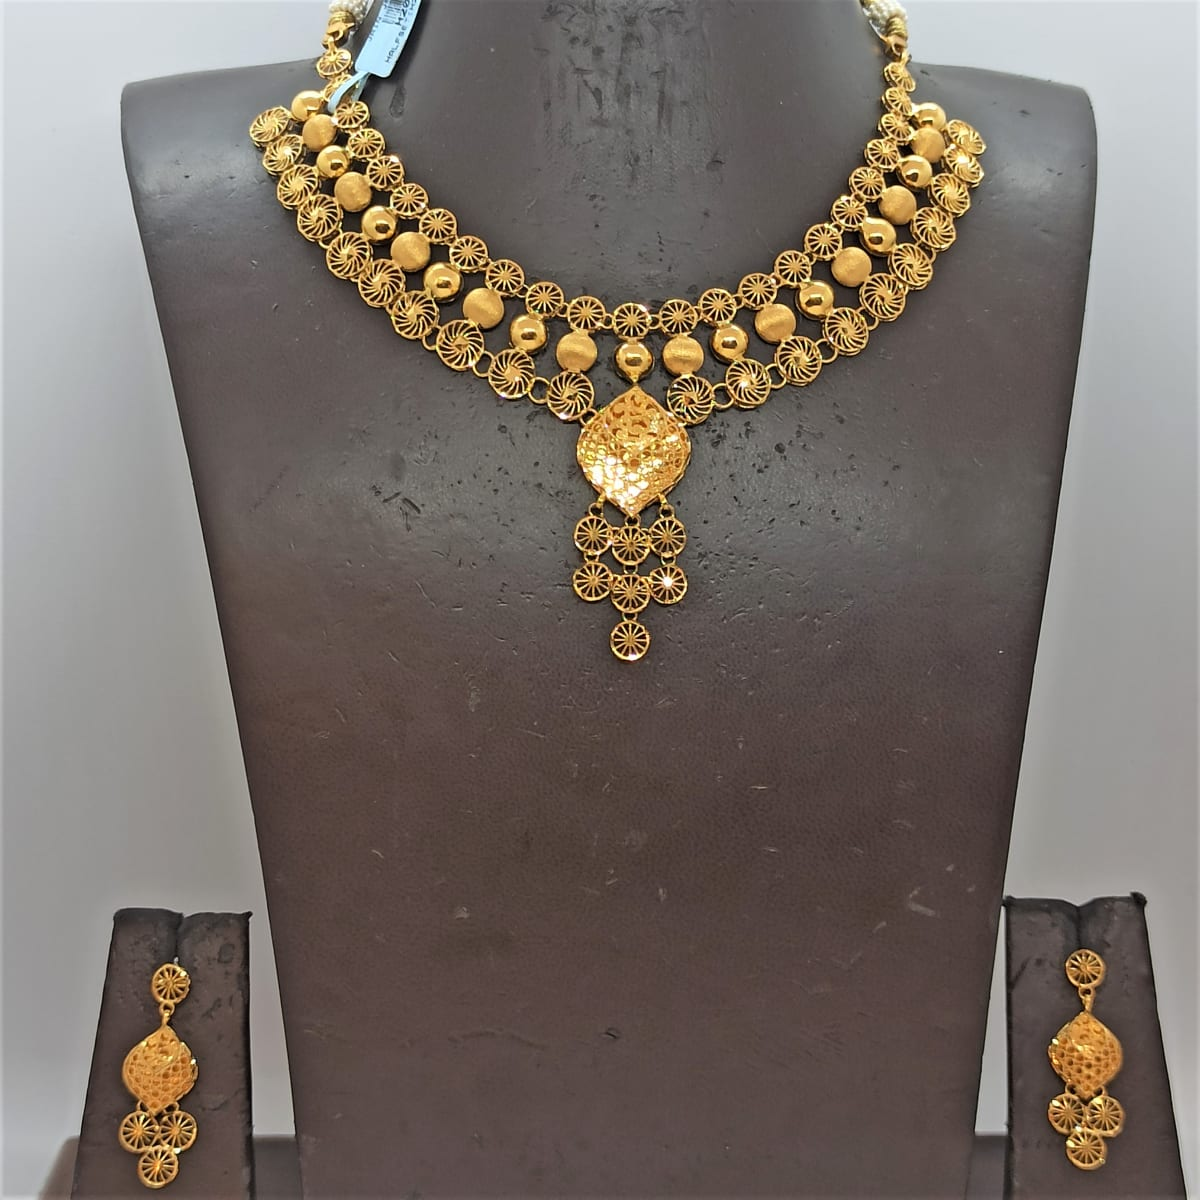 Round Jali Bead Necklace Earrings Set